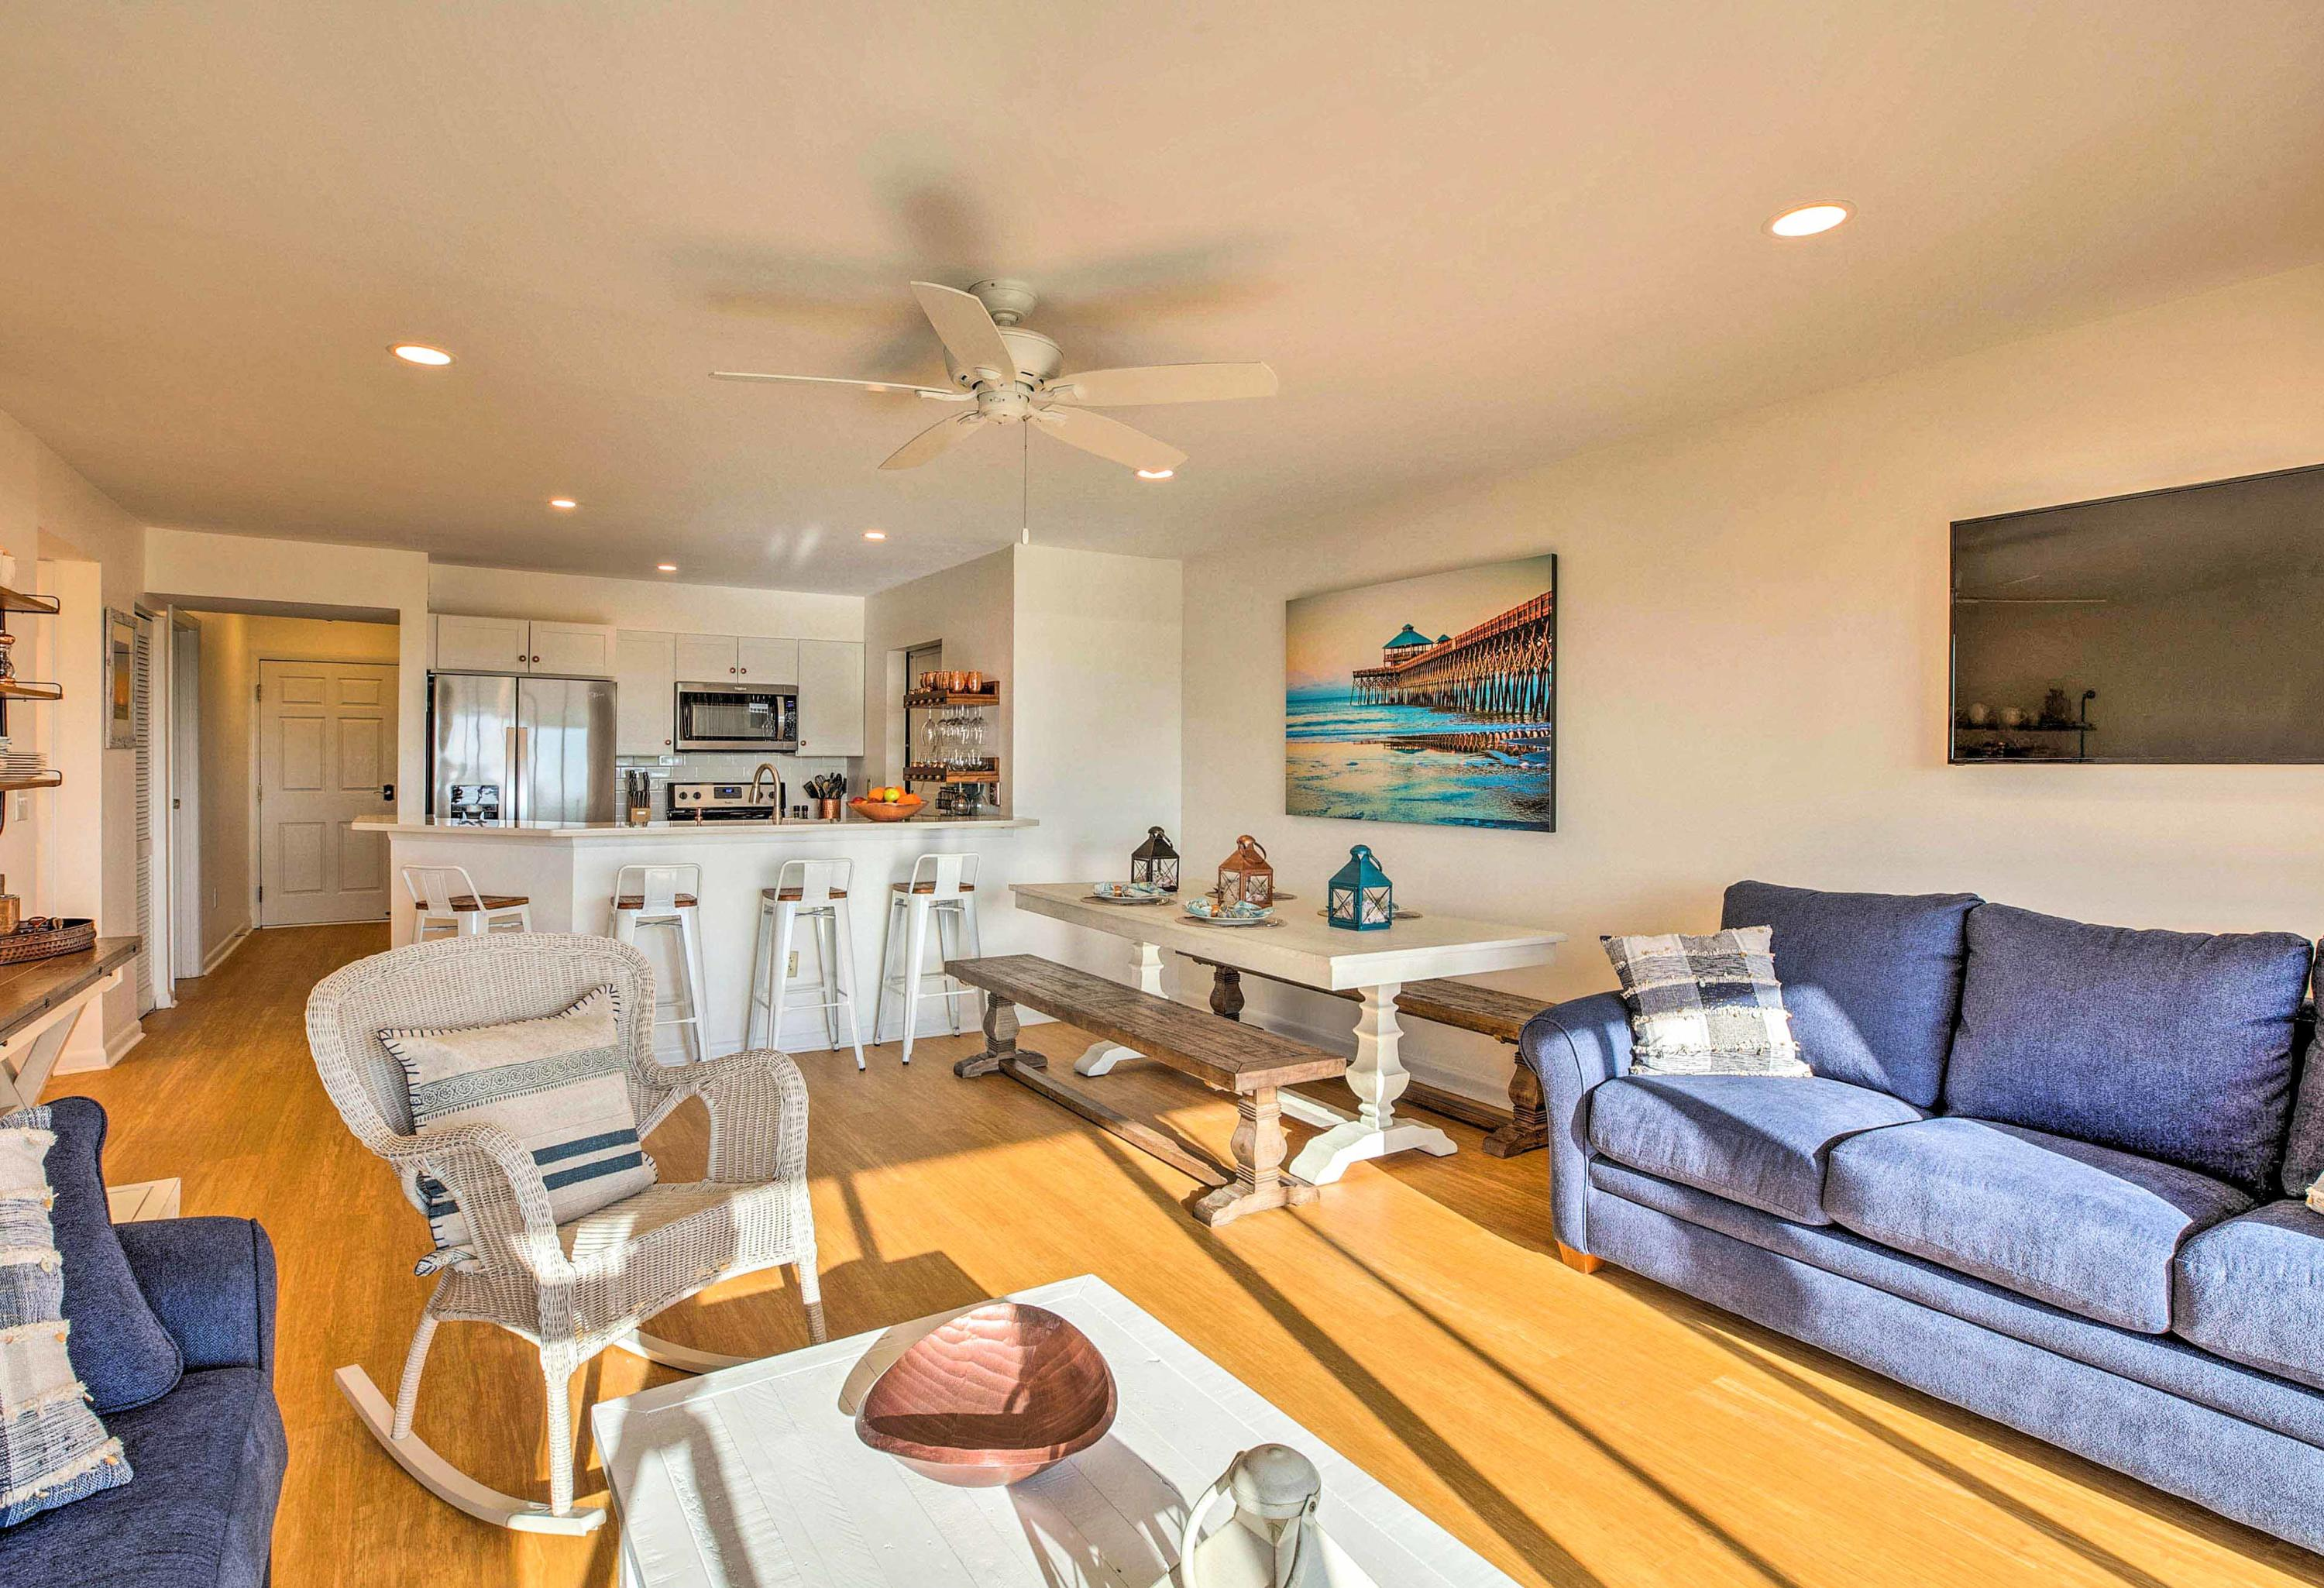 Mariners Cay Homes For Sale - 93 Mariners Cay, Folly Beach, SC - 33